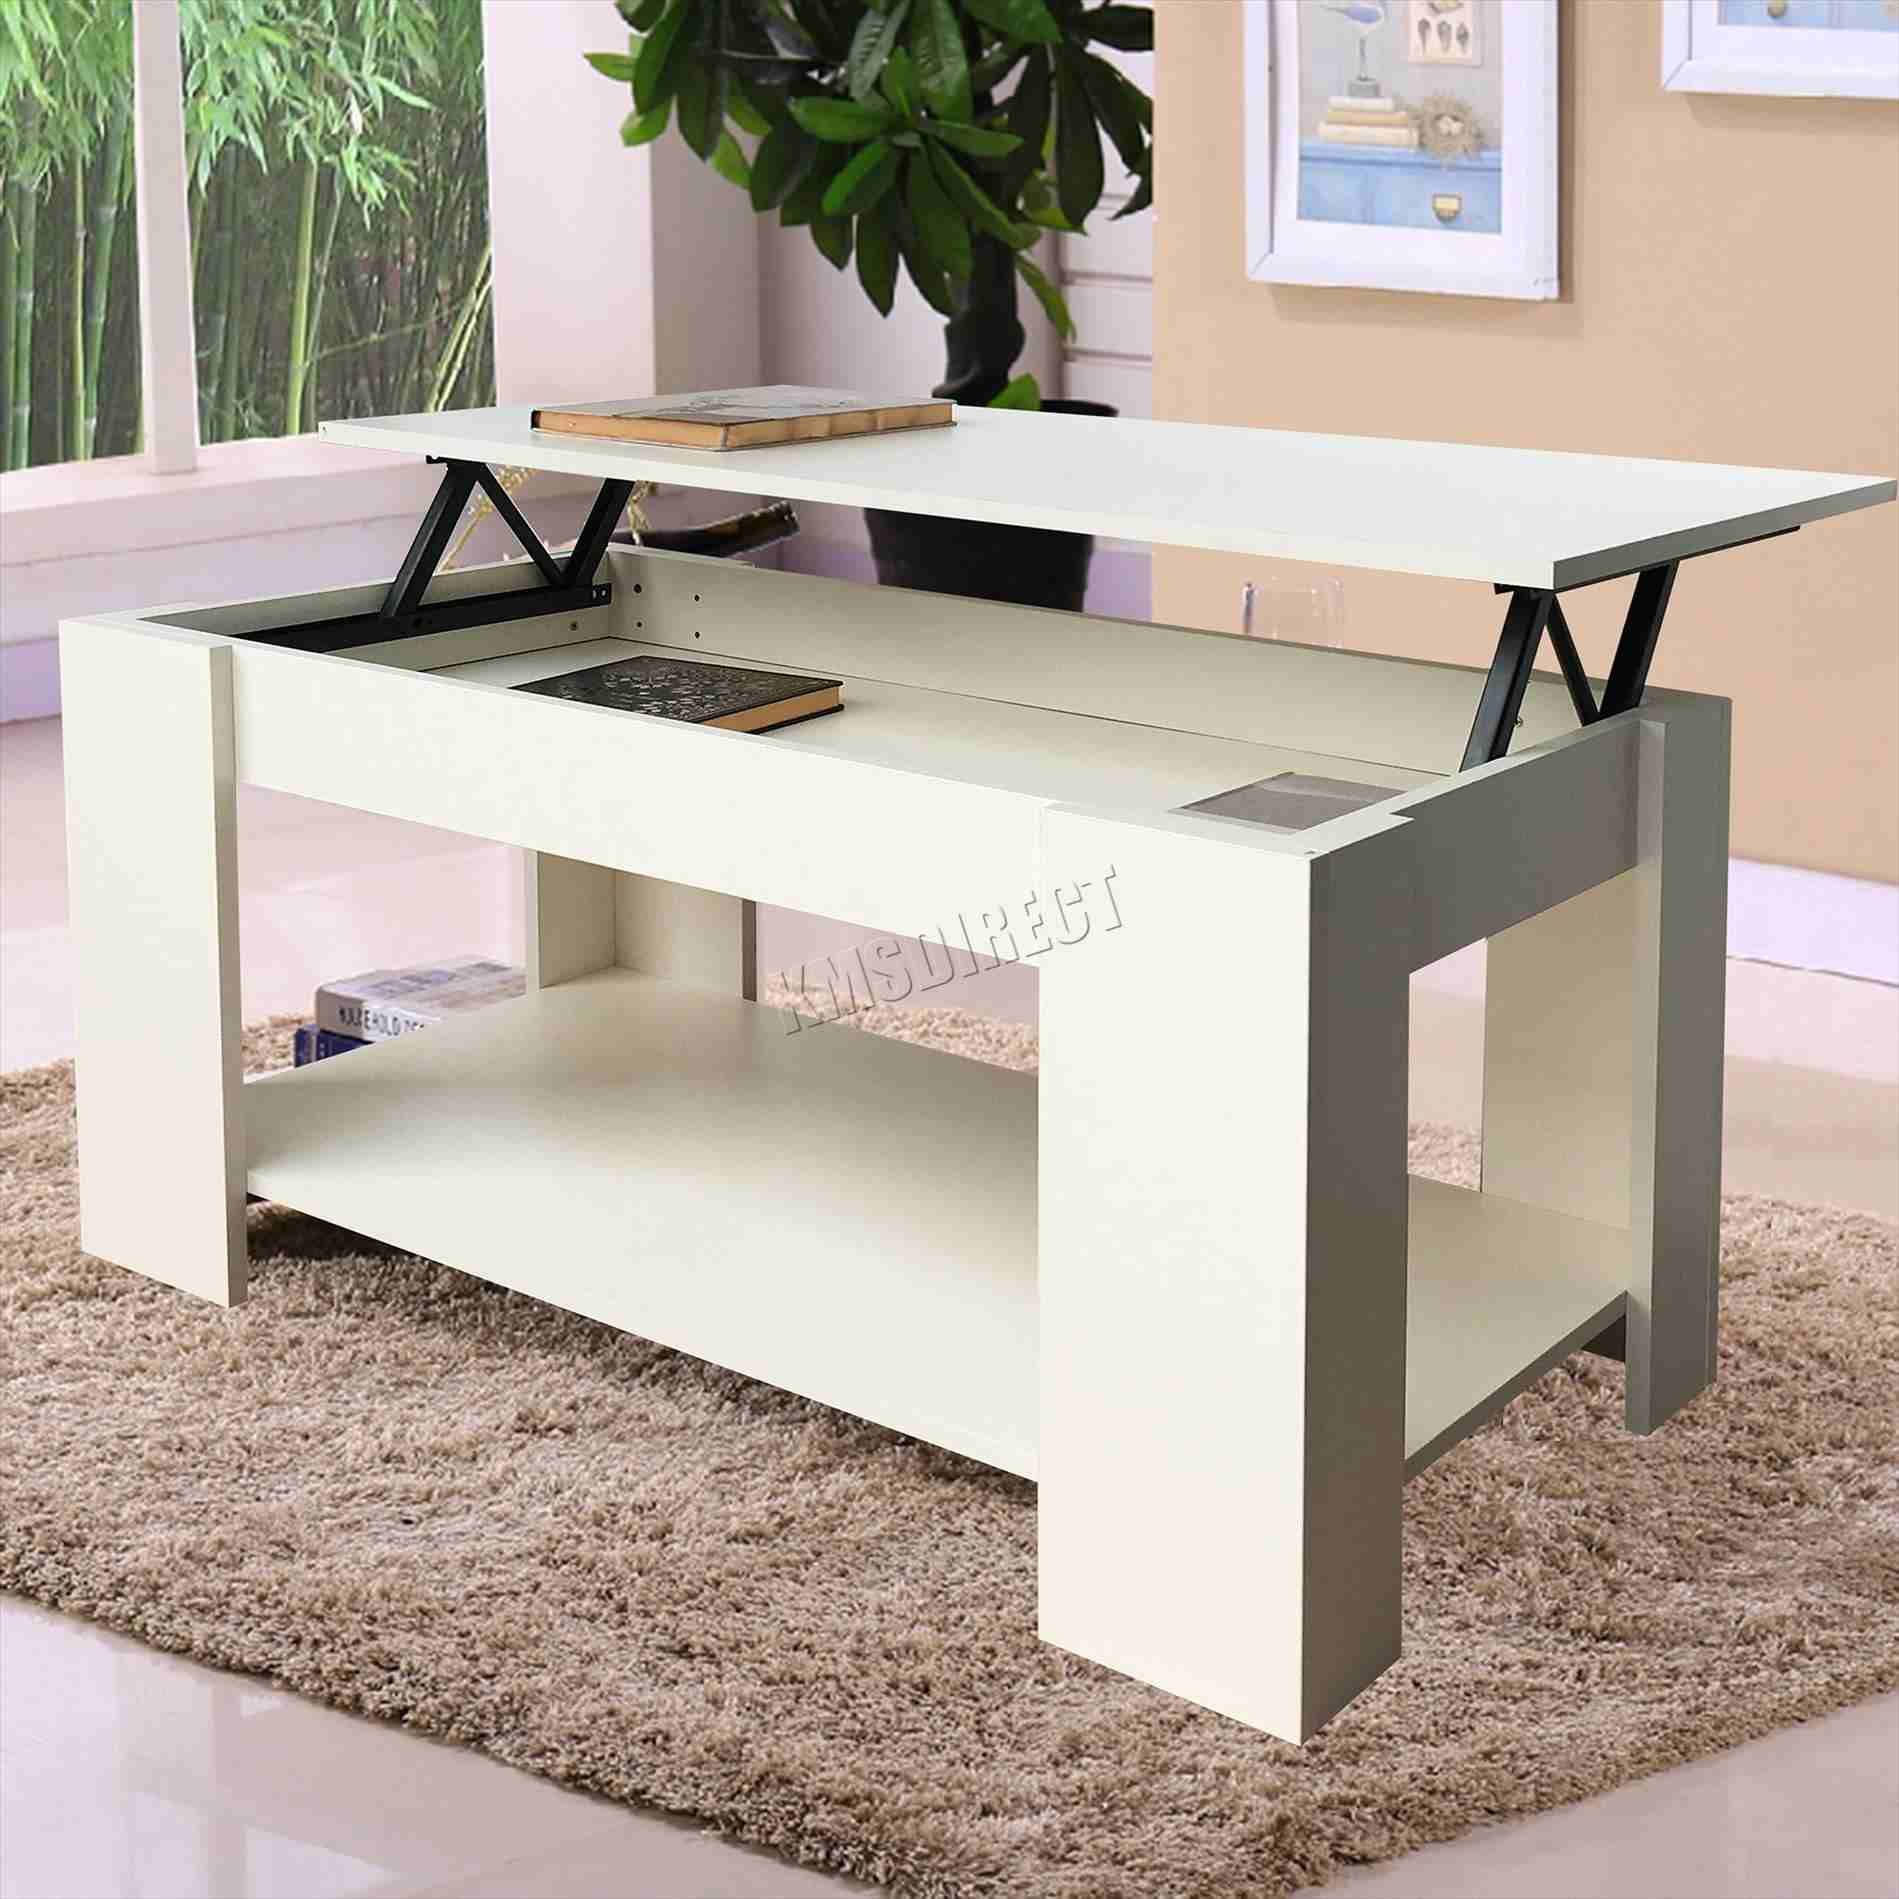 title | Coffee Table That Raises To Dining Height